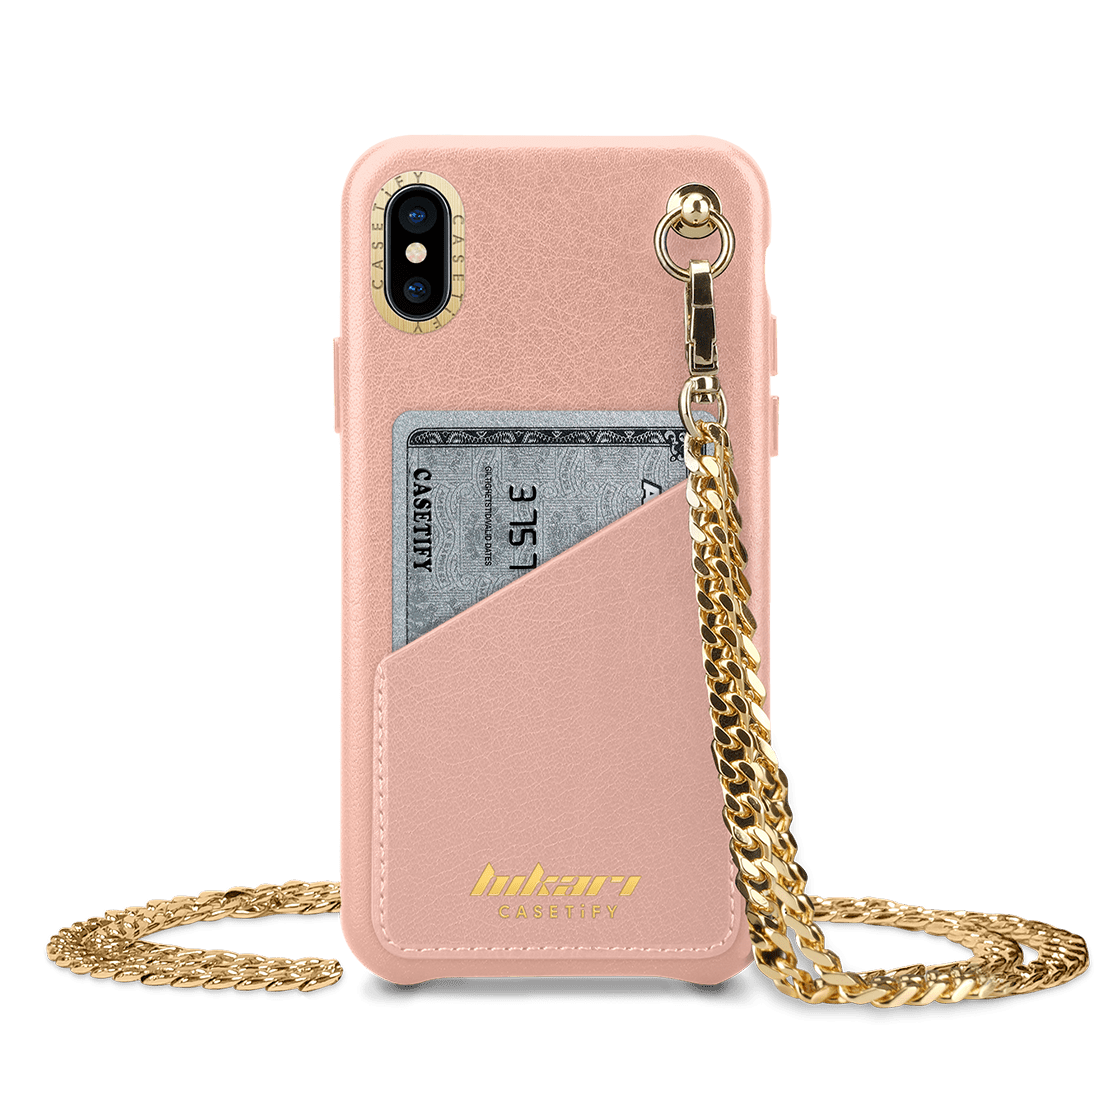 iPhone XS - Crossbody Leather Case - Metallic Nude 120